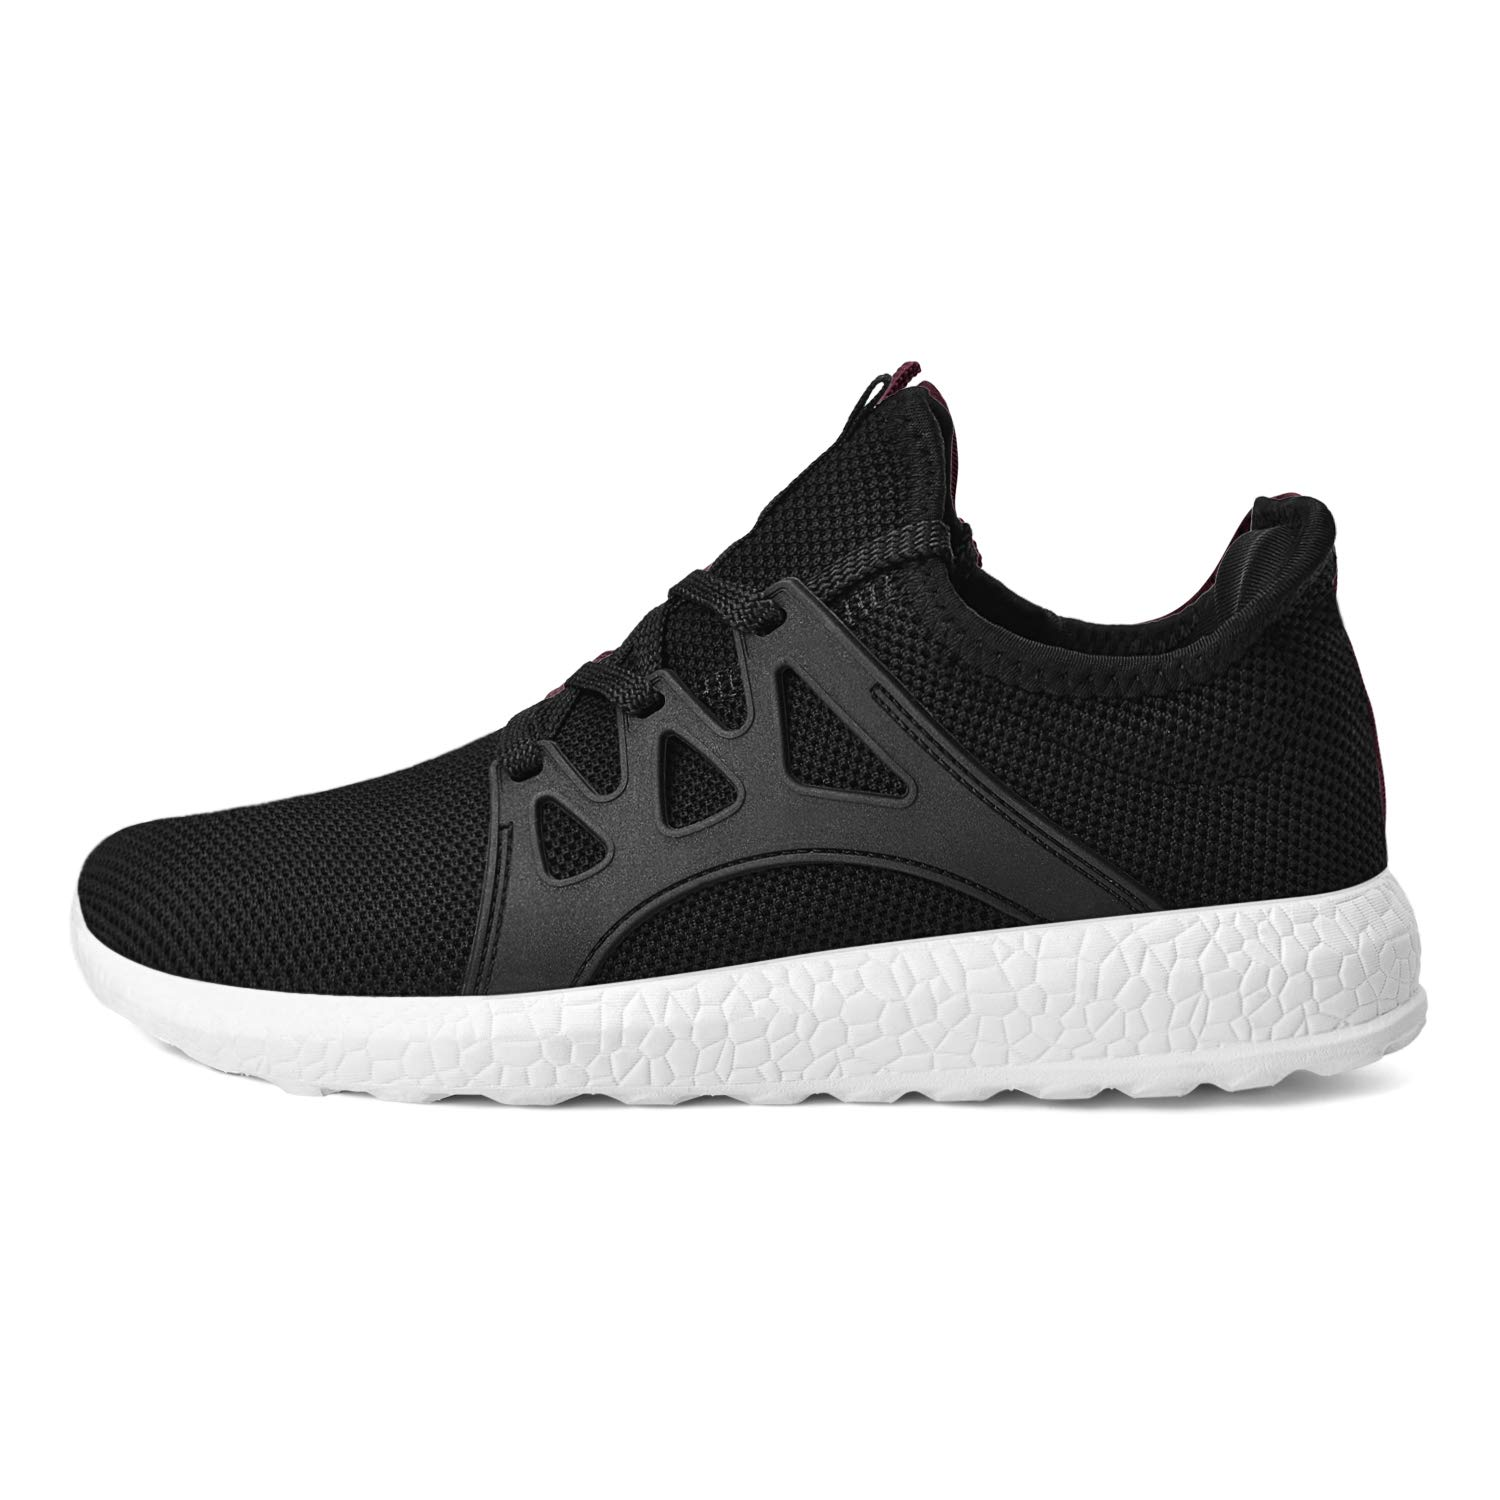 MARSVOVO Womens Non Slip Sneakers Lightweight Air Knitted Walking Running Shoes